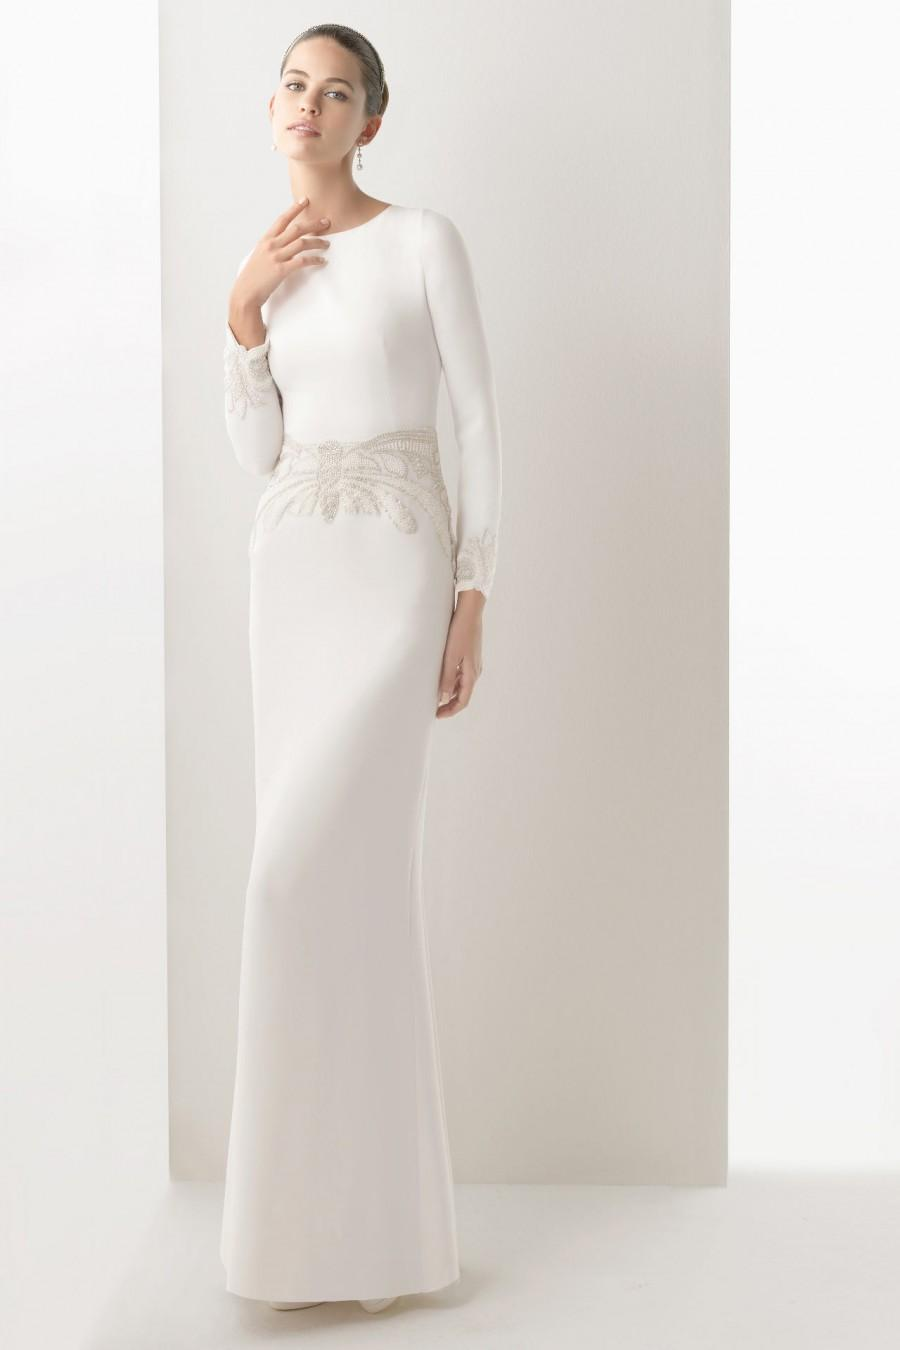 Simple Satin Long Sleeves Sheath Embroidery Wedding Dress Uk